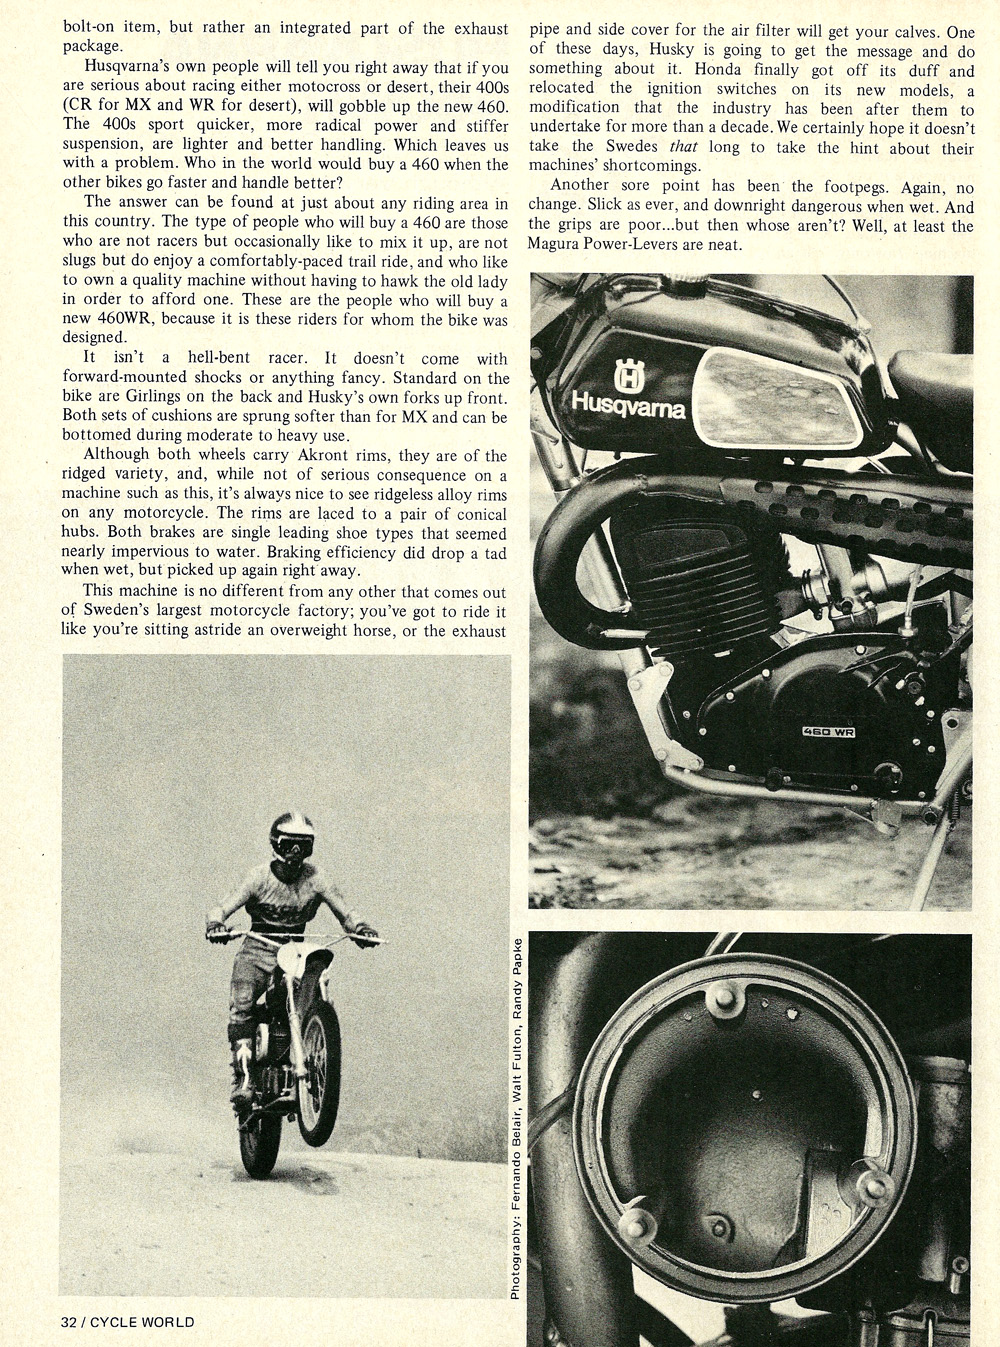 1975 Husqvarna 460WR road test 02.jpg